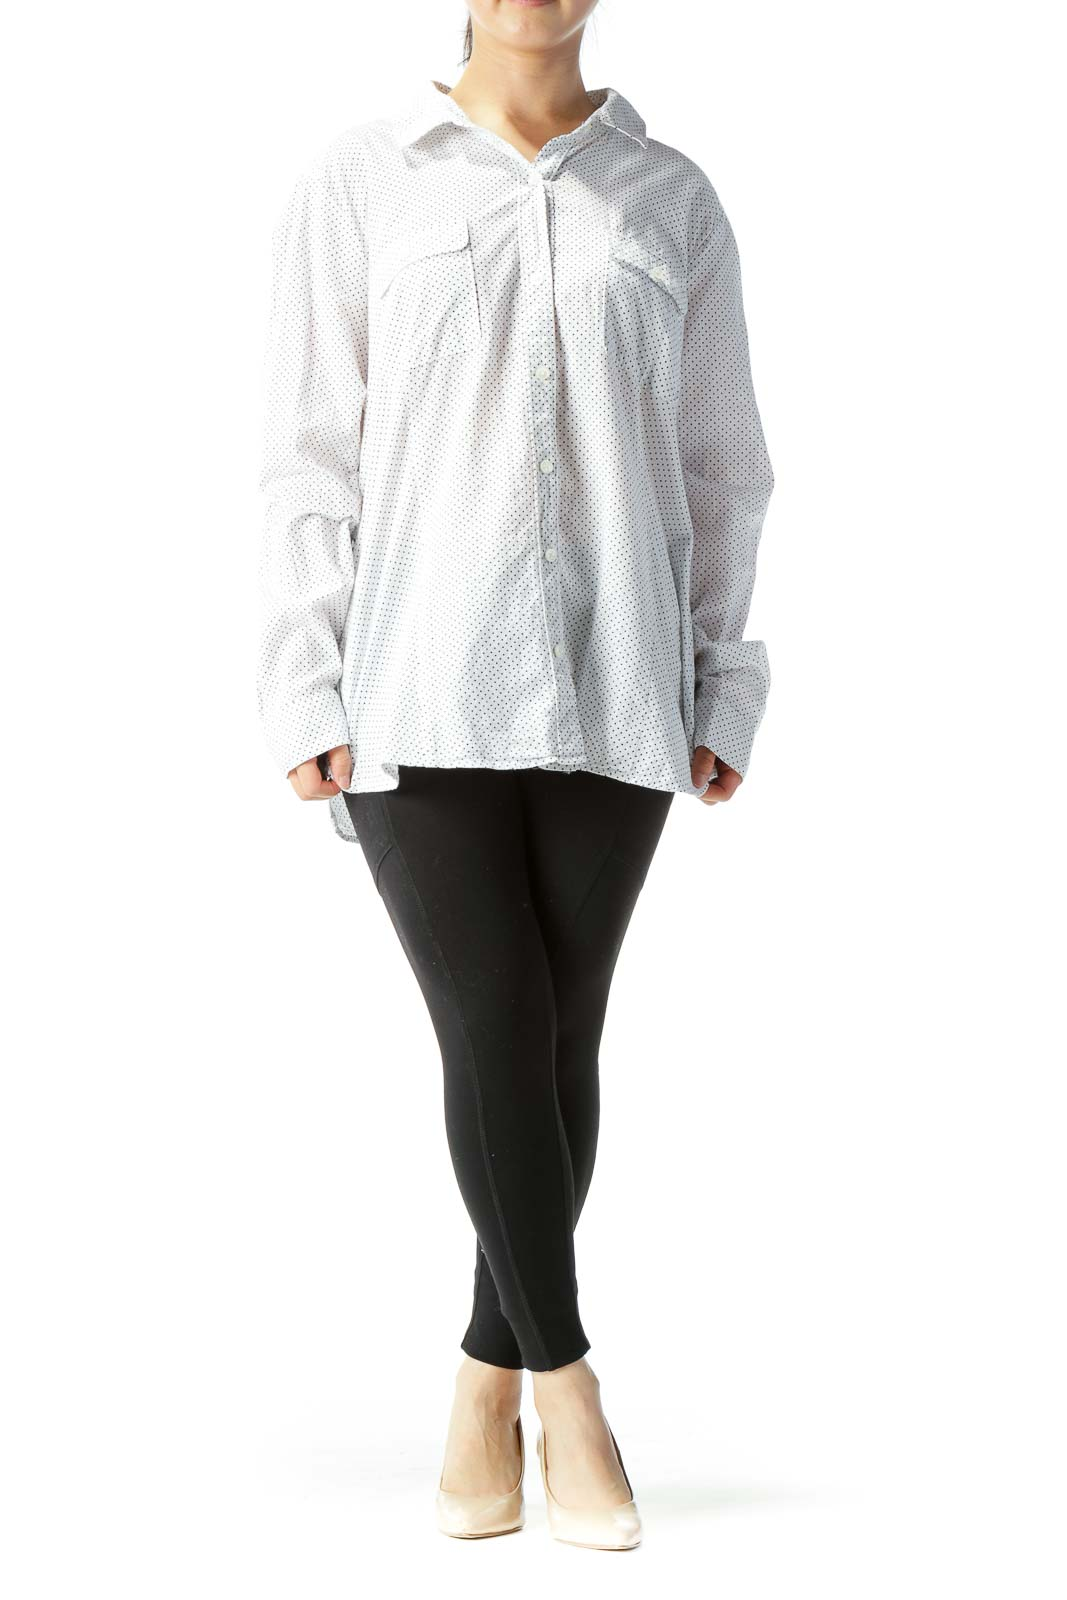 White & Black Polka-Dot Button-Down Long-Sleeve Blouse